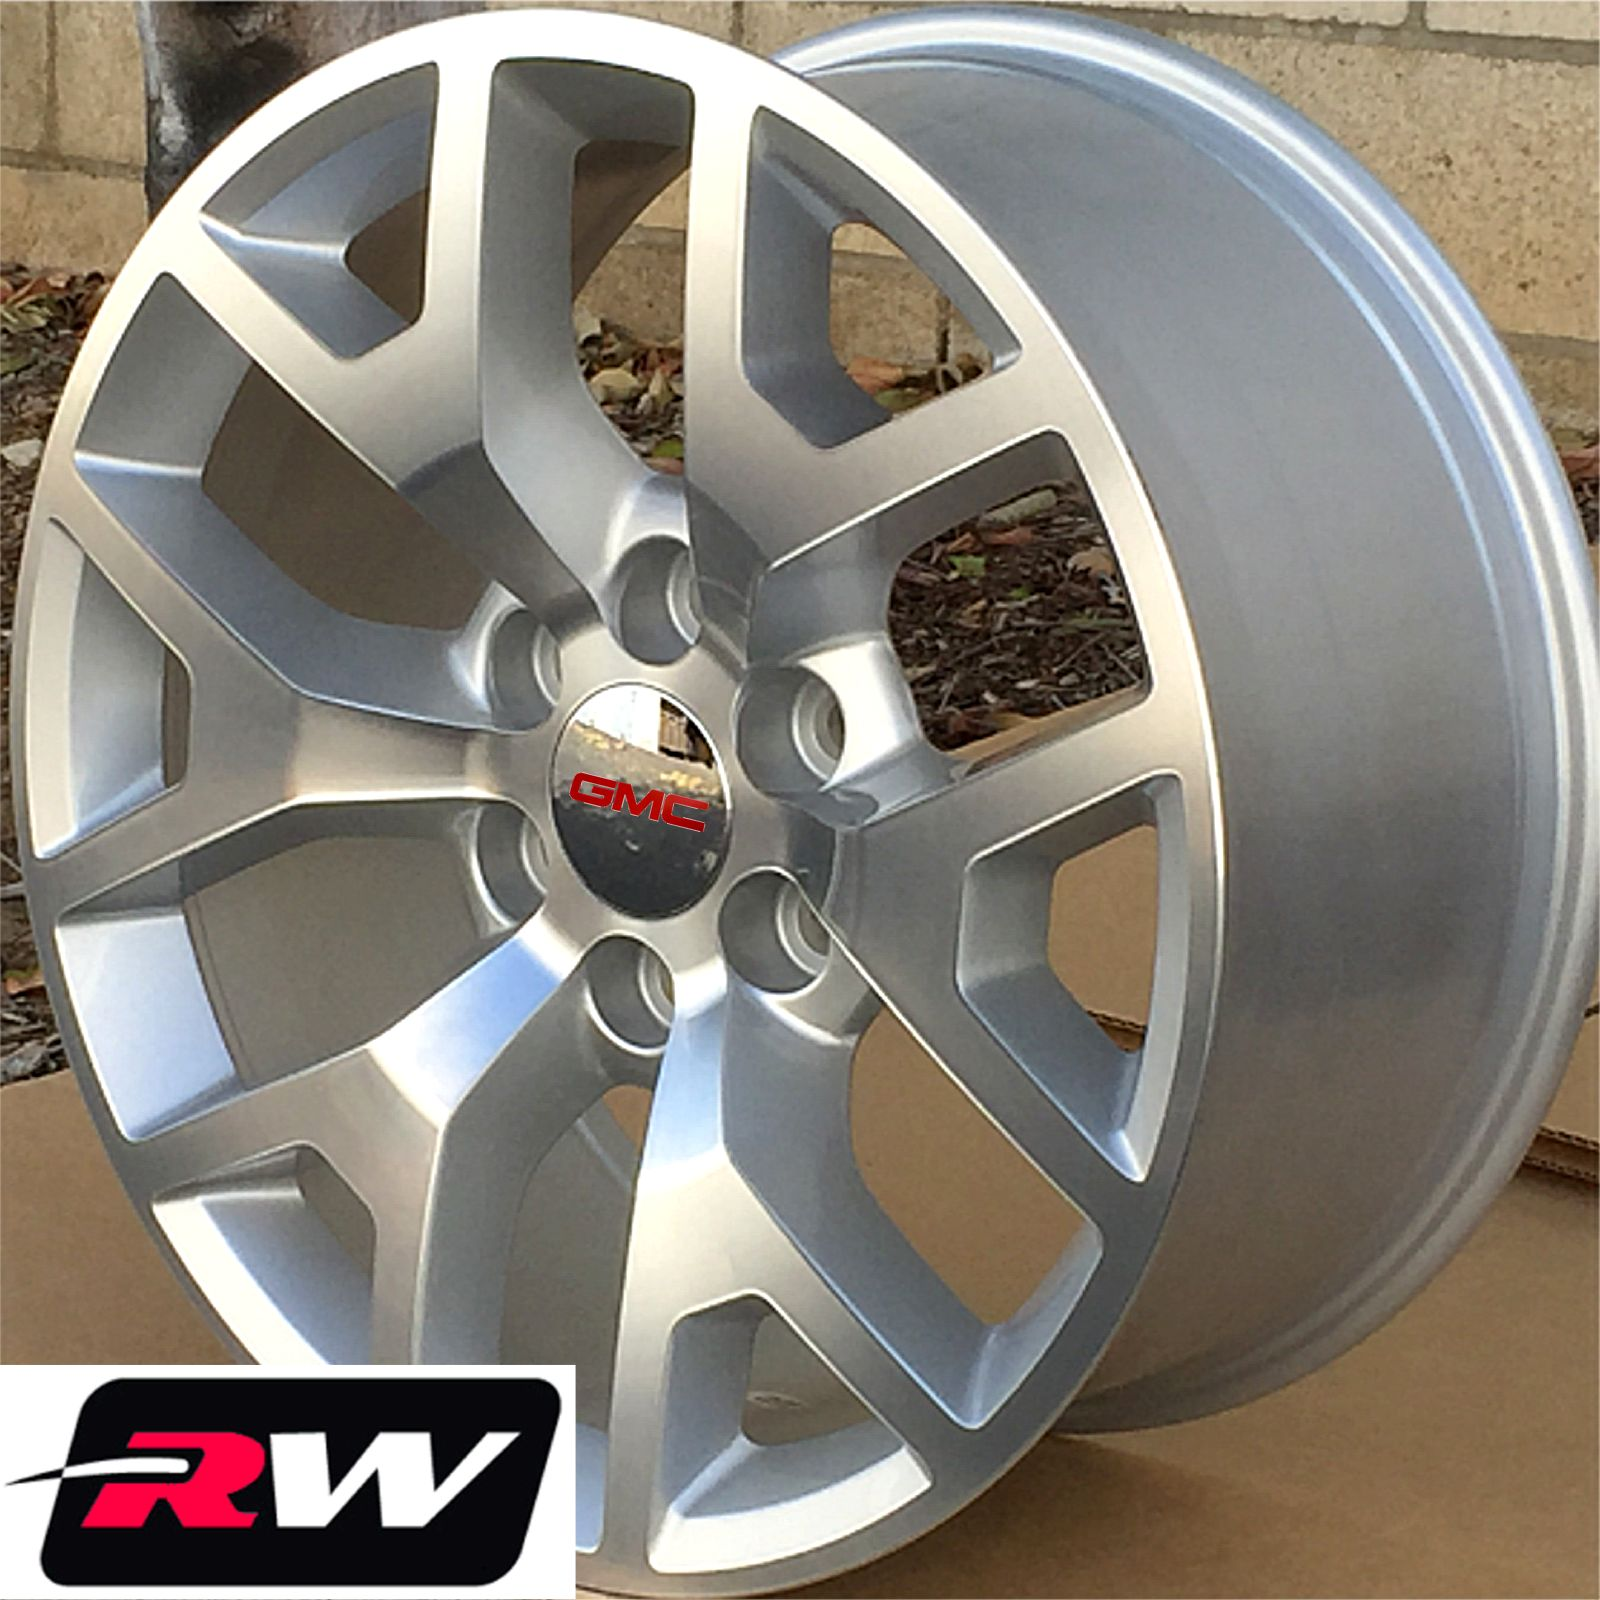 50 Inch Rims : Gmc sierra wheels silver machined quot inch rims